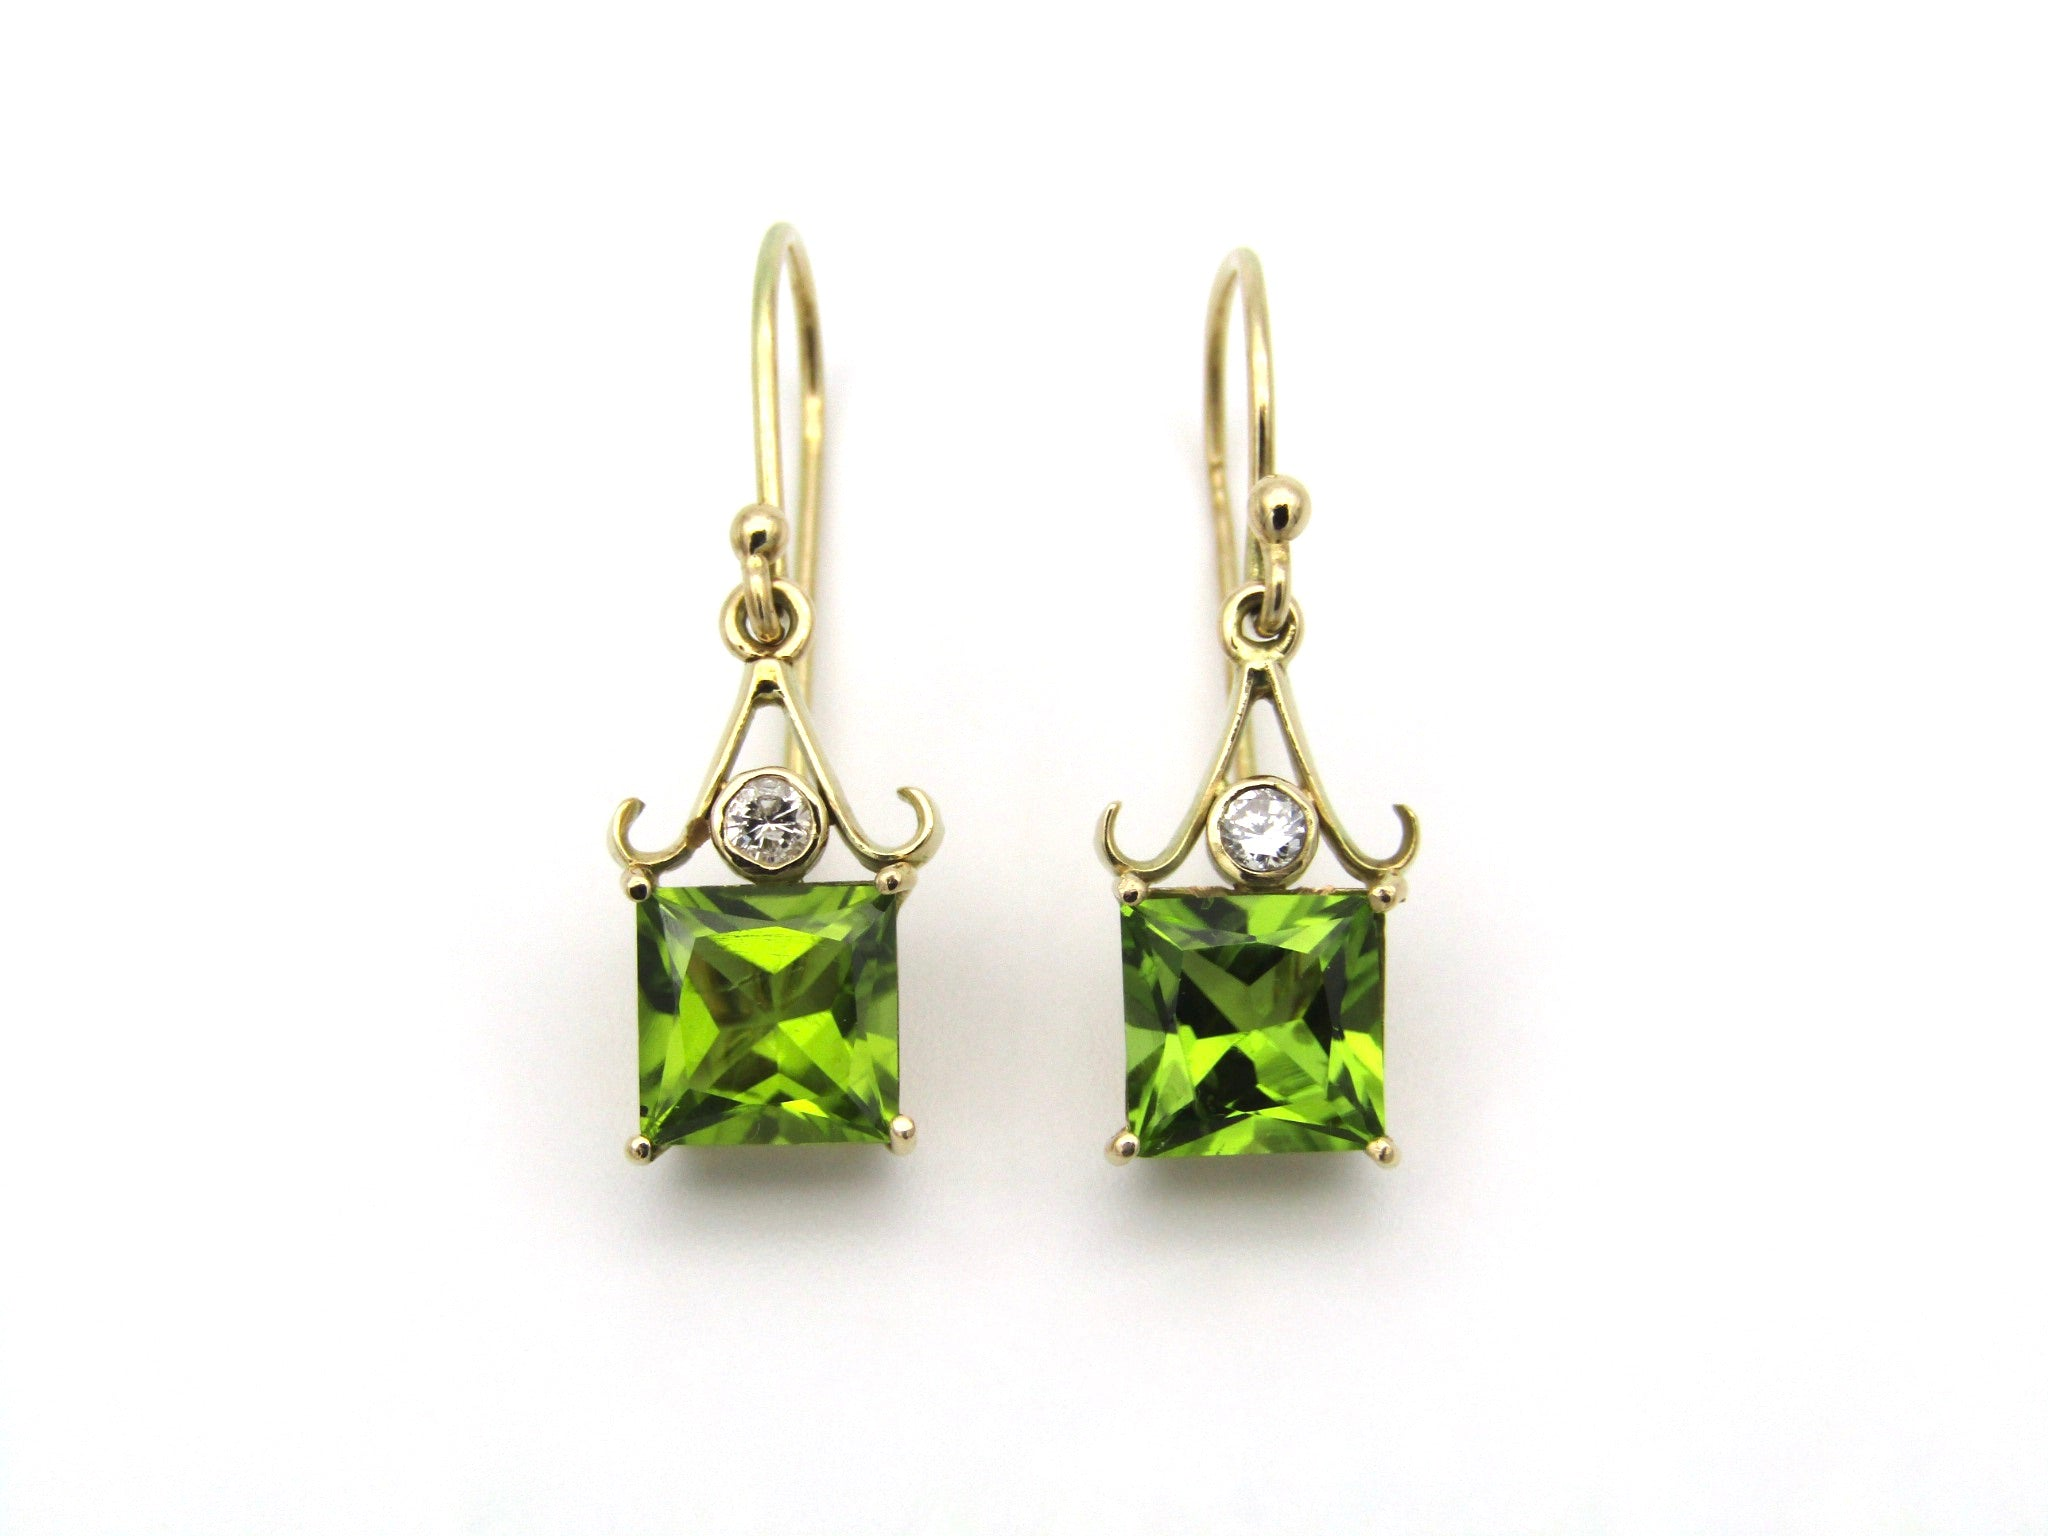 9K gold peridot and diamond earrings.